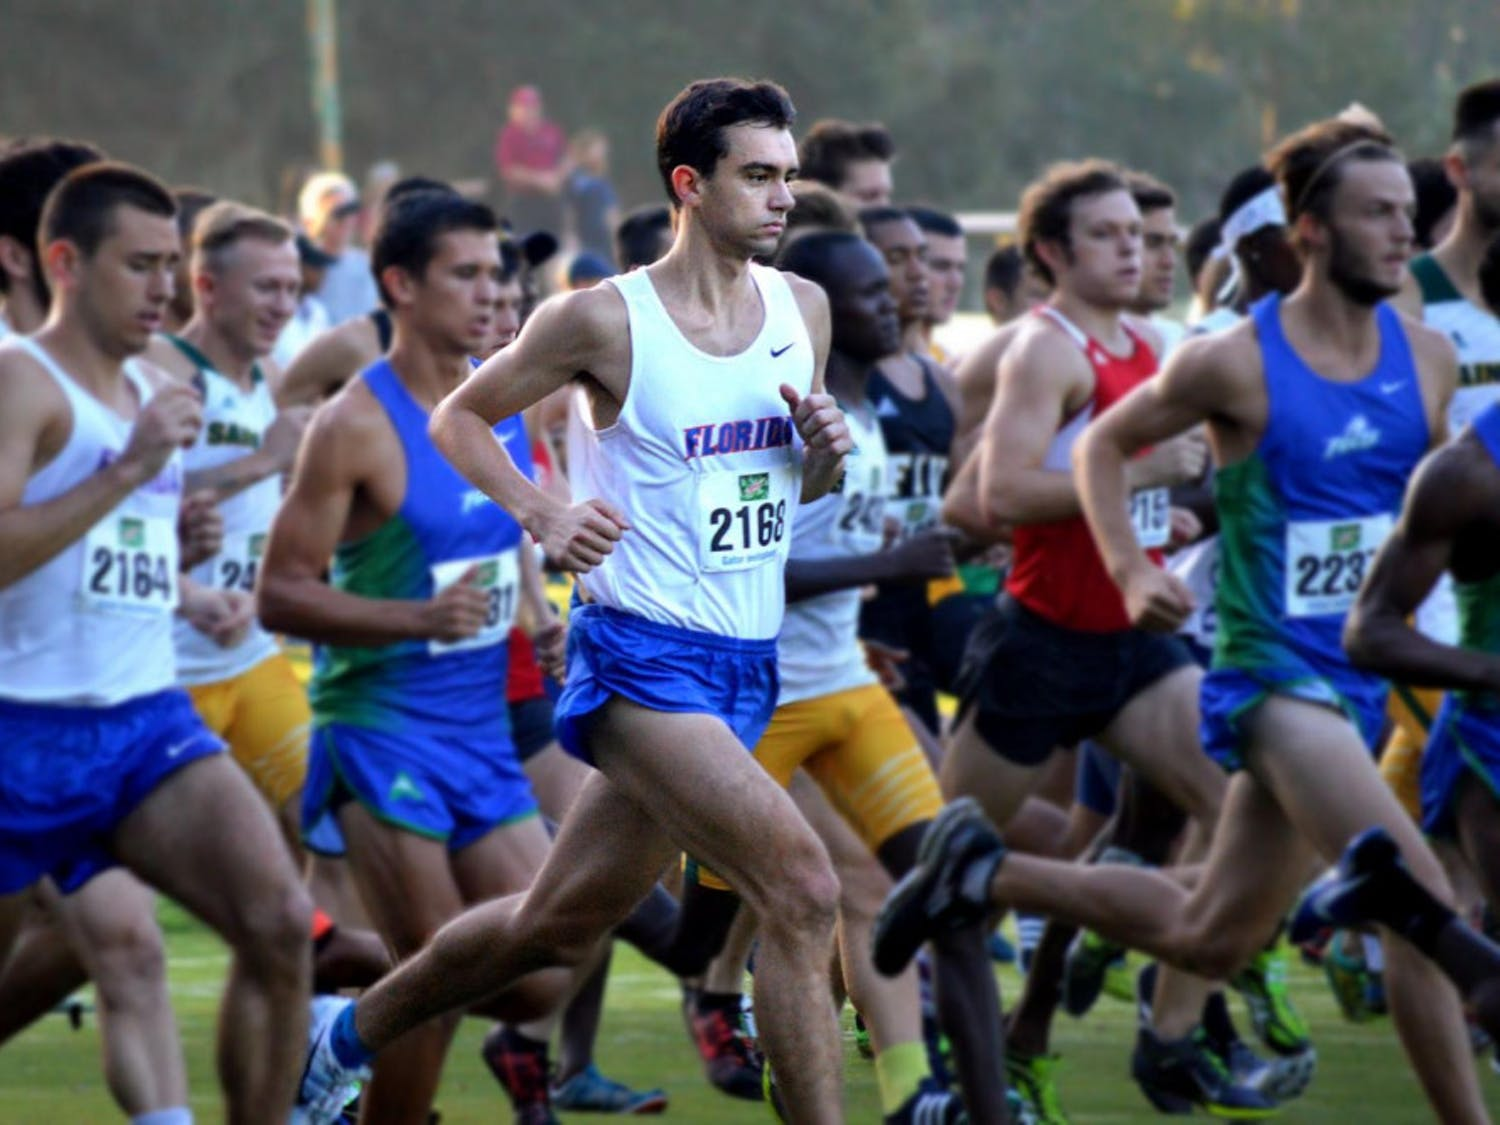 UF enters the season ranked 7th on the men's side and tied for 5th on the women's.